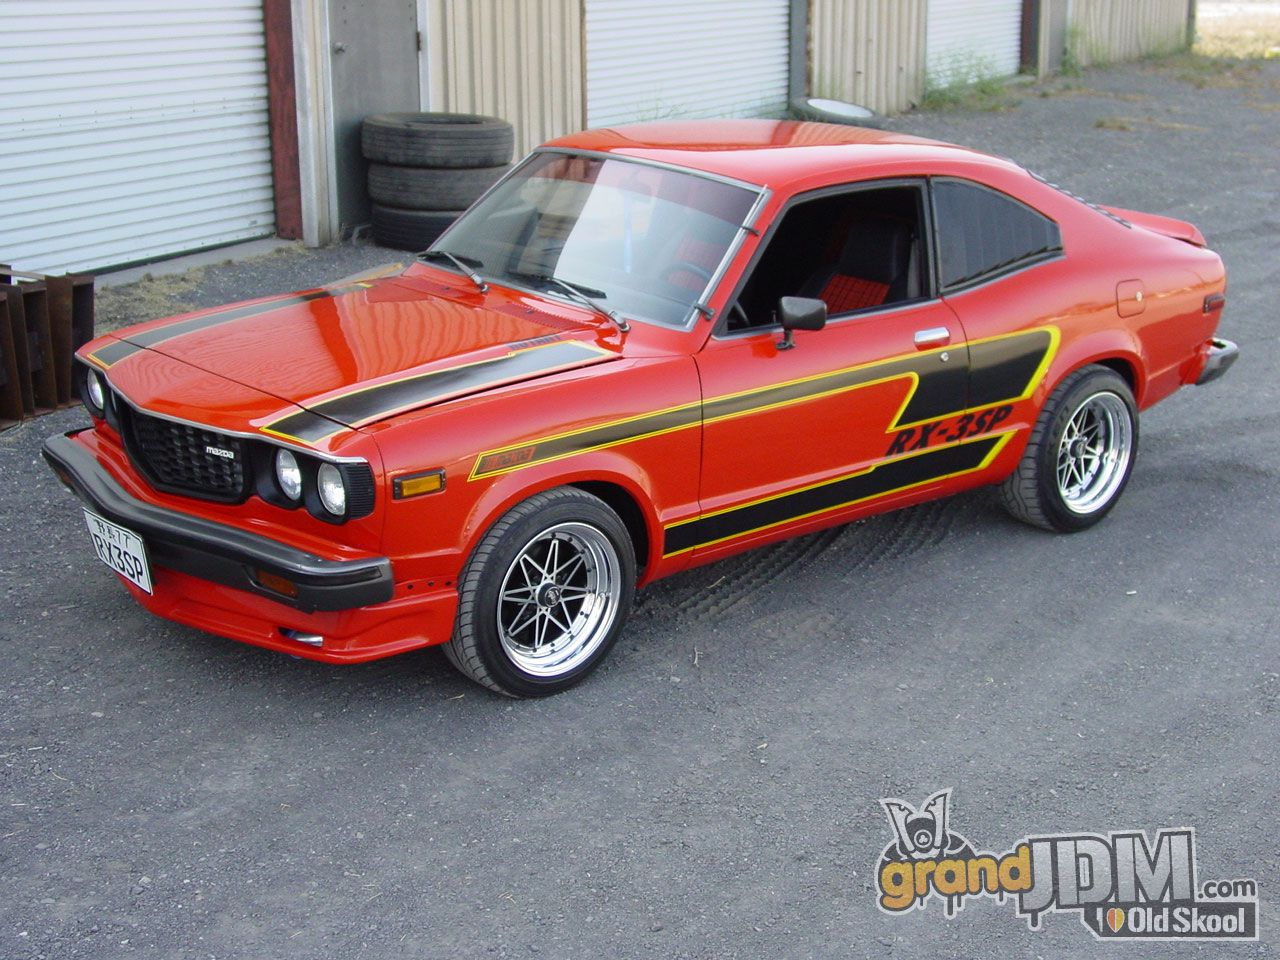 1973 Mazda RX-2 for Sale | mazda rx3 related images,151 to 200 ...